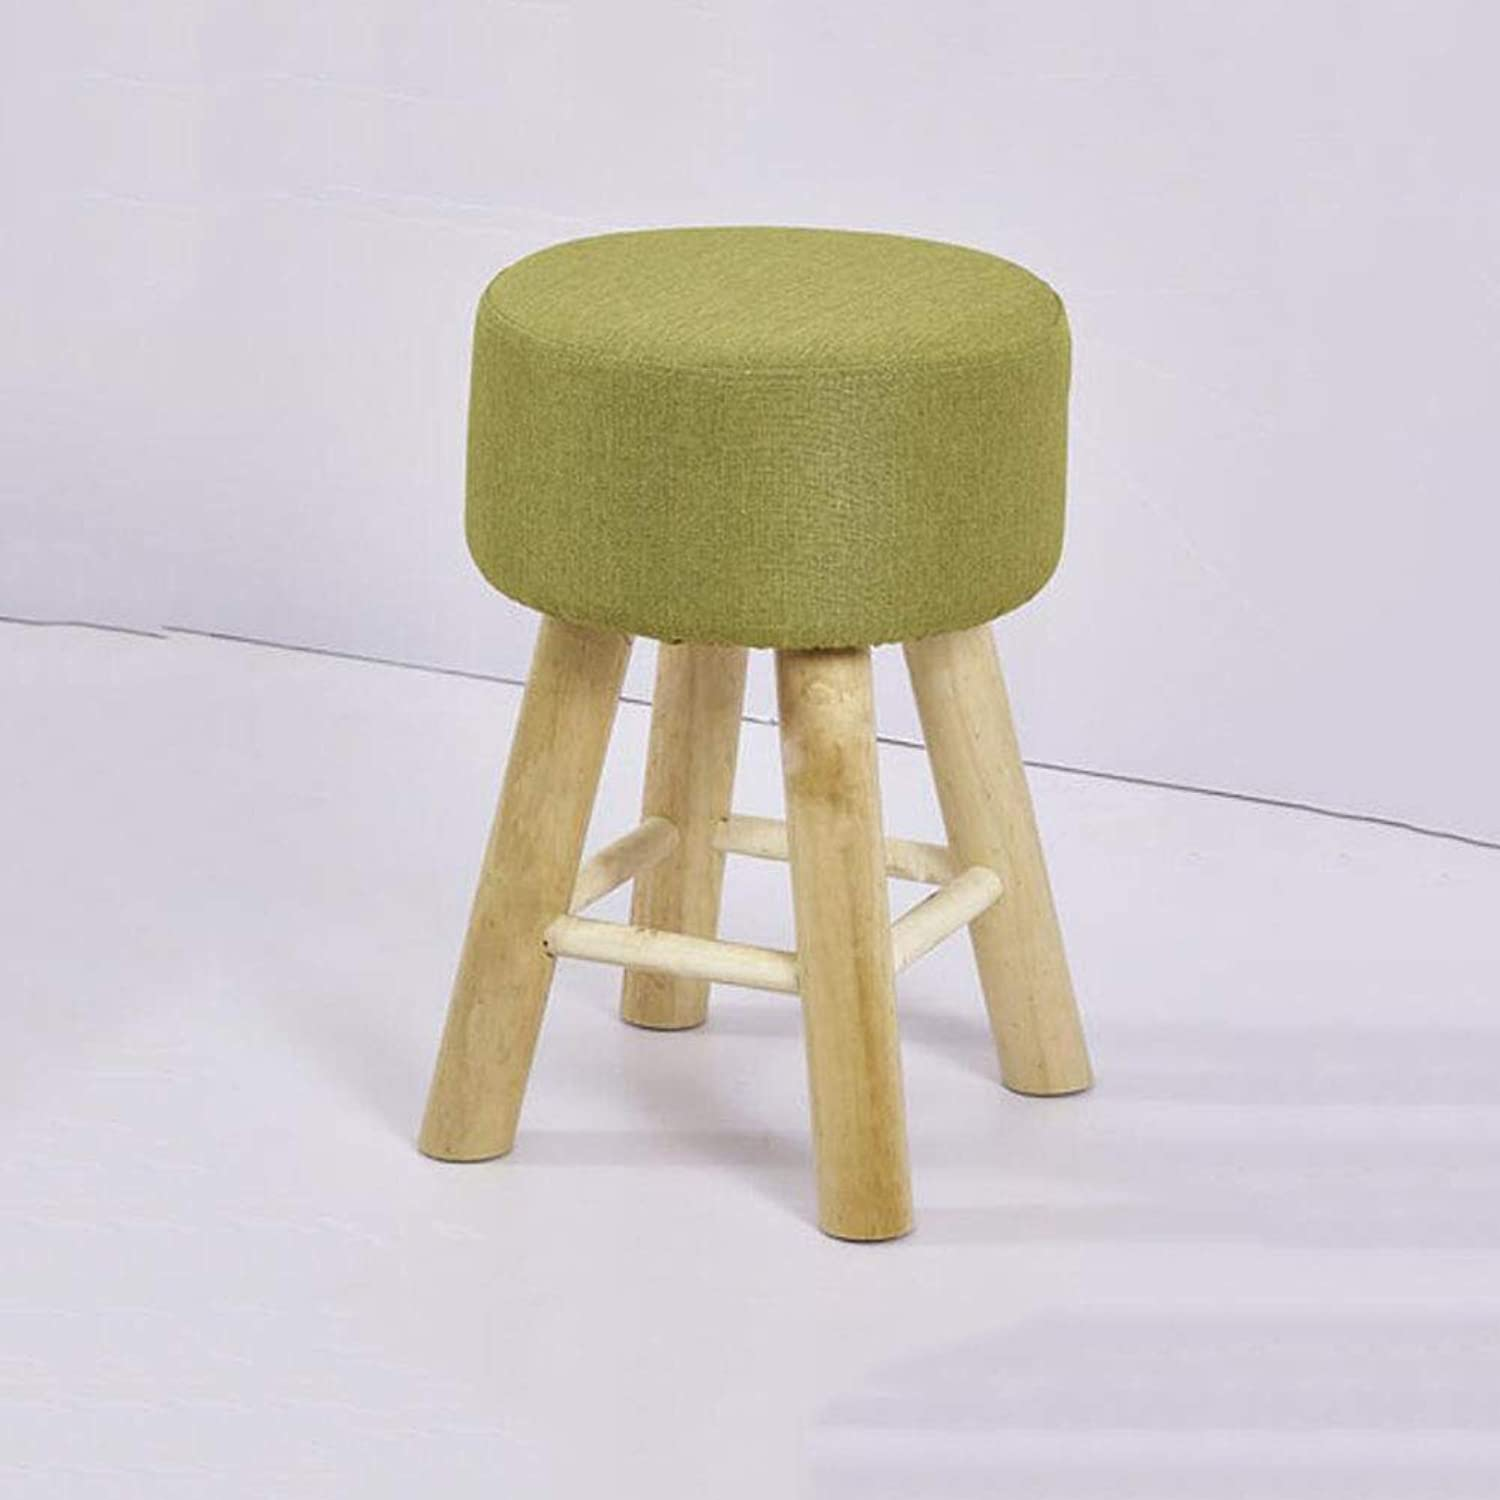 FH Solid Wood Stool Home Low Stool shoes Bench Bench Fabric Stool Fashion Makeup Stool Dressing Stool FH (color   Matcha Green)